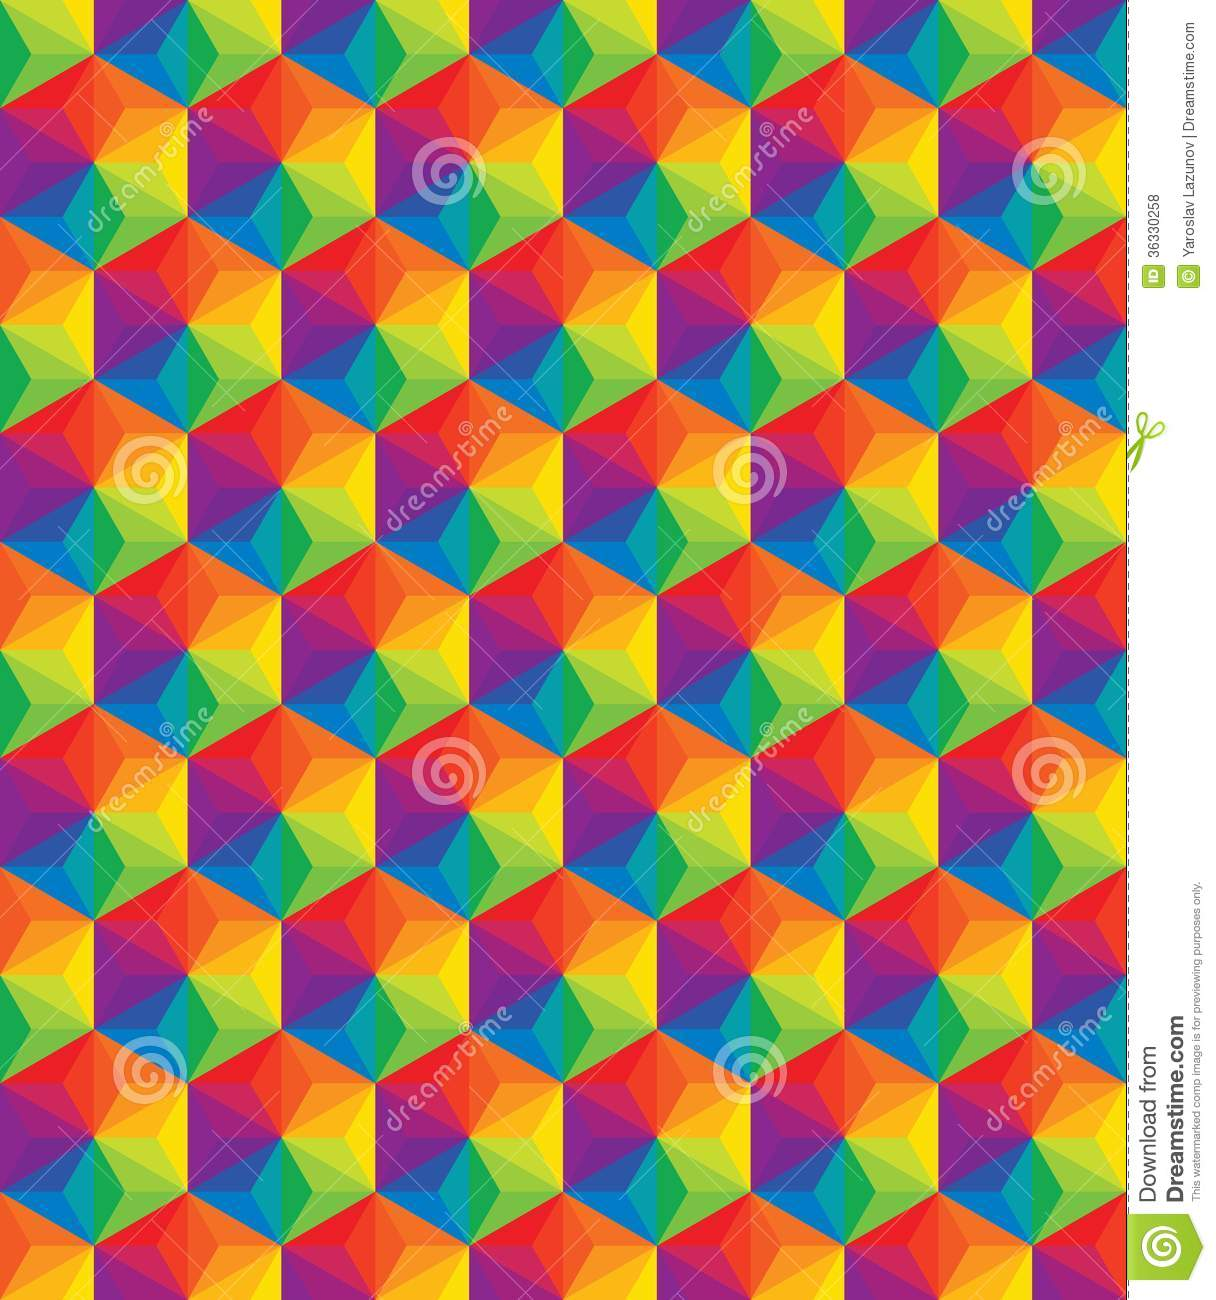 Vector colorful pattern of geometric shapes. Cloth, artistic.